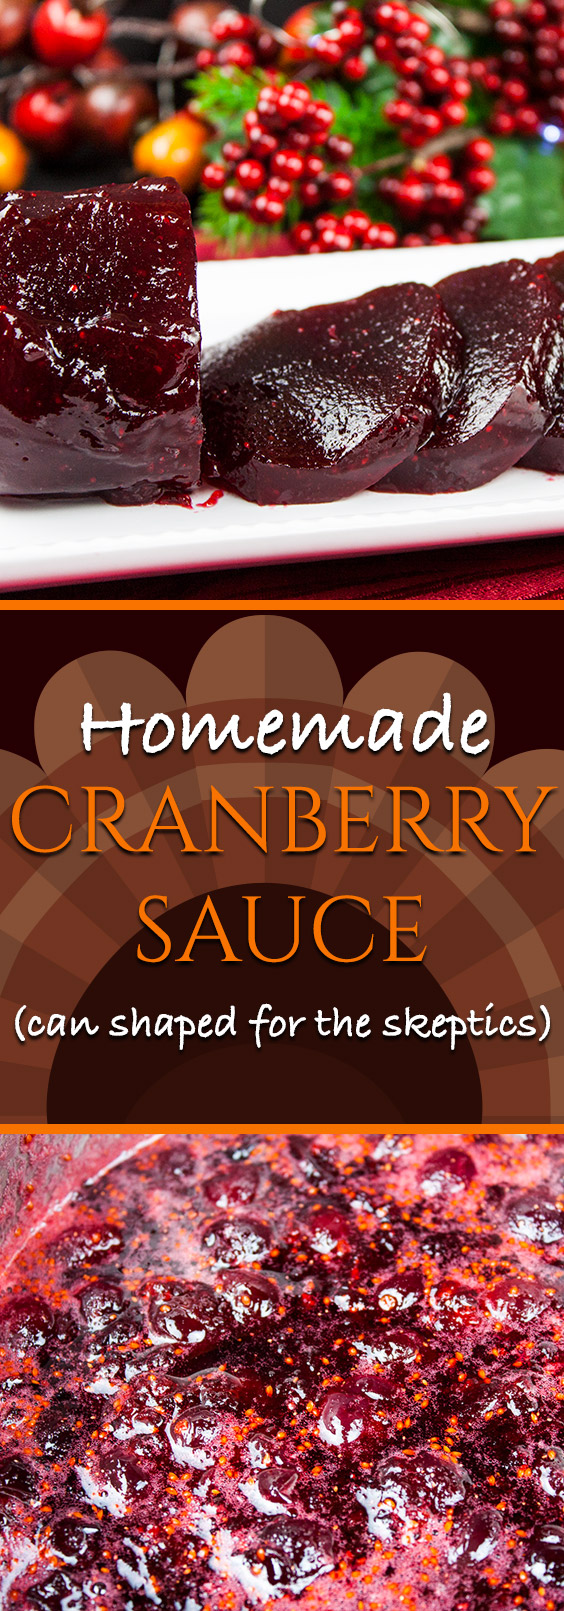 Homemade Cranberry Sauce - Smooth, creamy, jellied homemade cranberry sauce. Super easy recipe with only 4 ingredients!